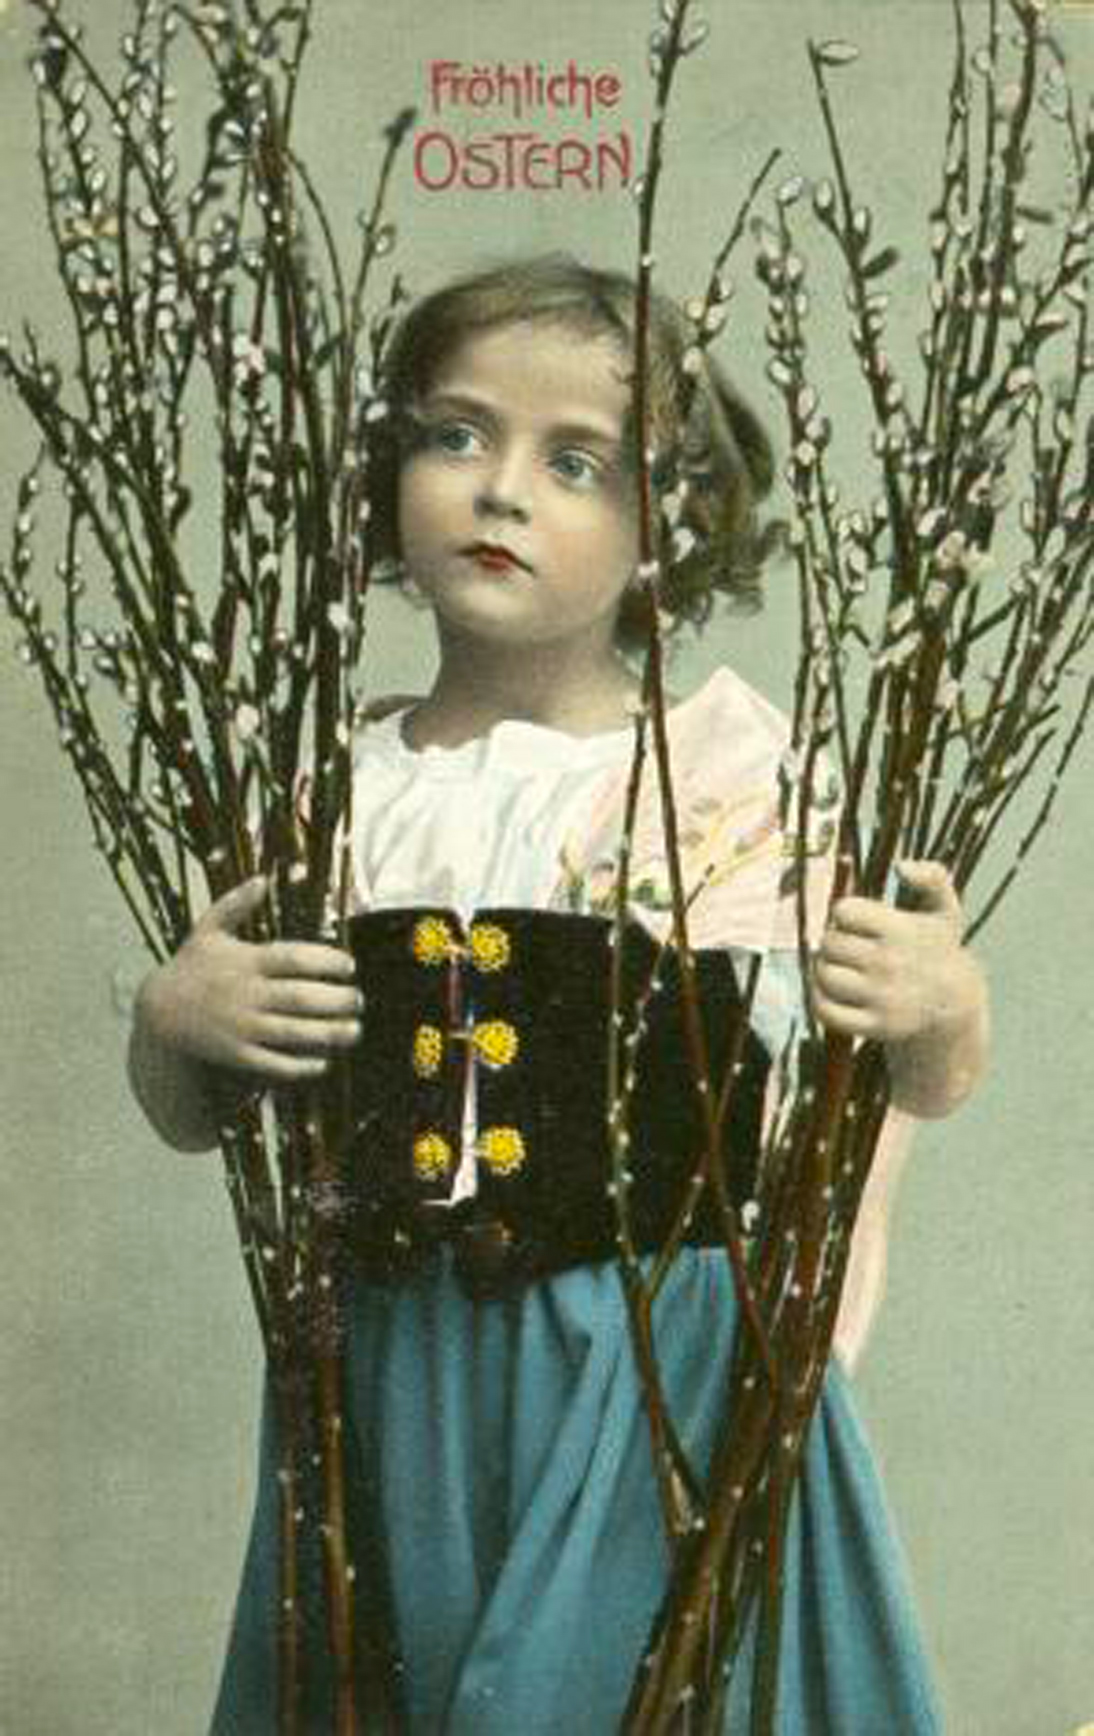 German girl holding pussy willows Osterpostkarte